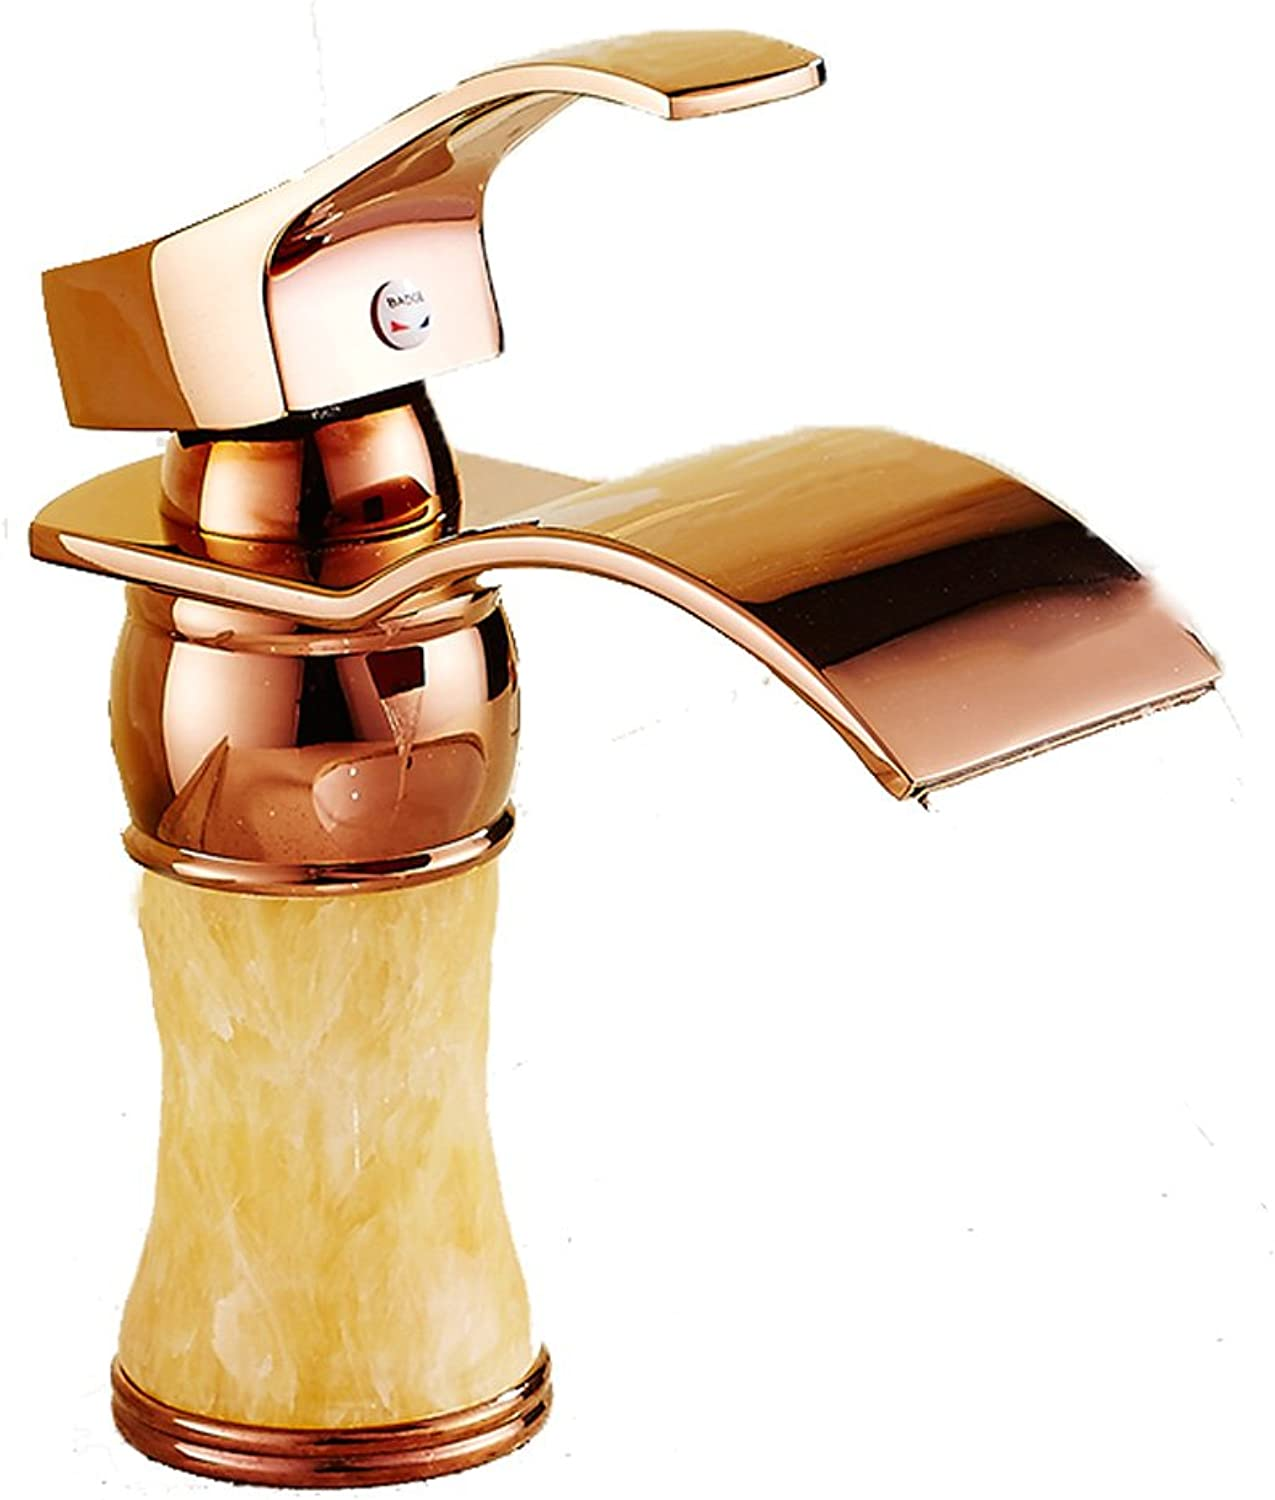 Bidet Taps Topaz pink gold Faucet Copper Hot And Cold Single Hole Waterfall Retro European Style Bathroom Wash Basin Aperture 32MM To 40MM Can Be Installed